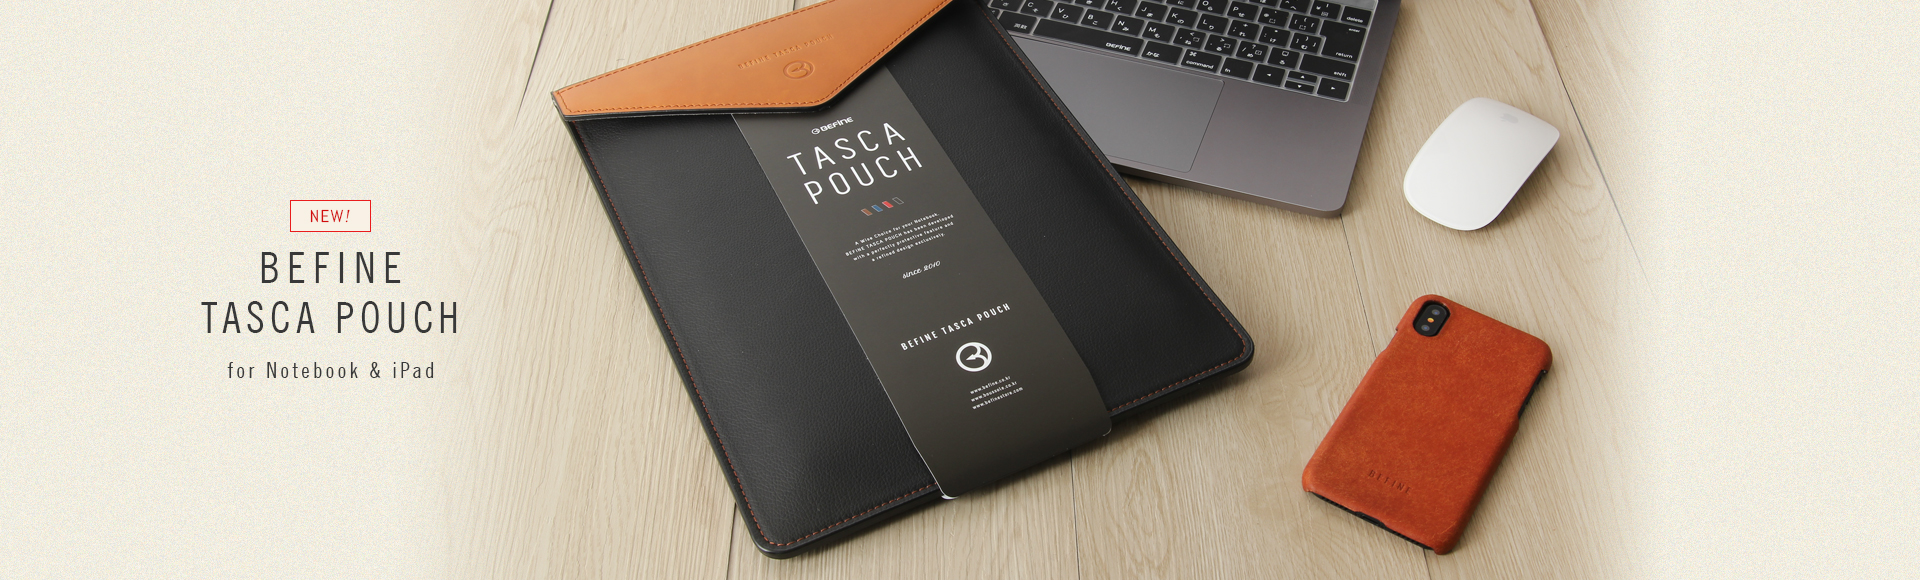 tasca pouch for Notebook, iPad